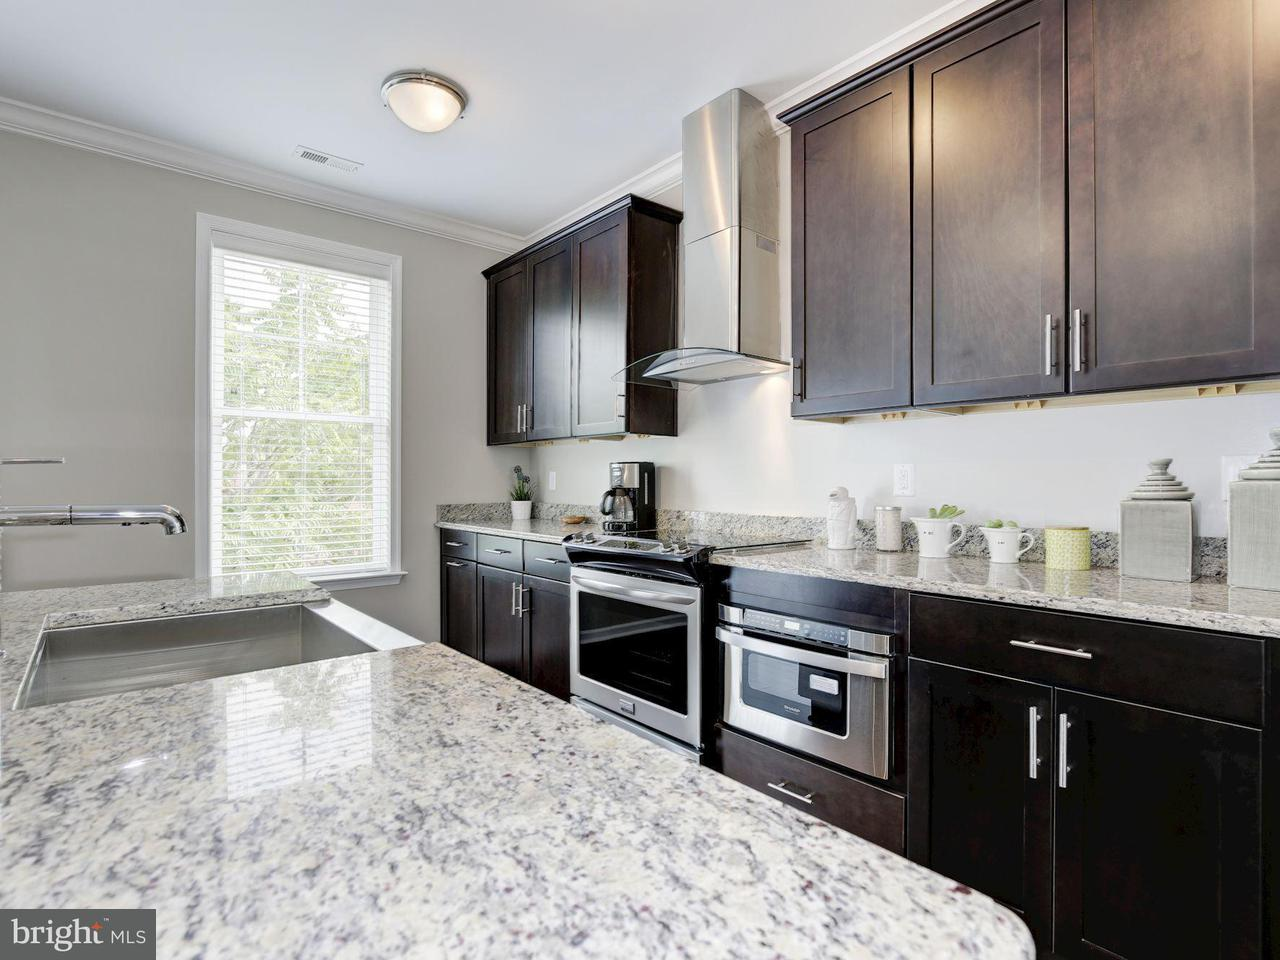 Single Family for Sale at 418 Woodcrest Dr SE #a Washington, District Of Columbia 20032 United States